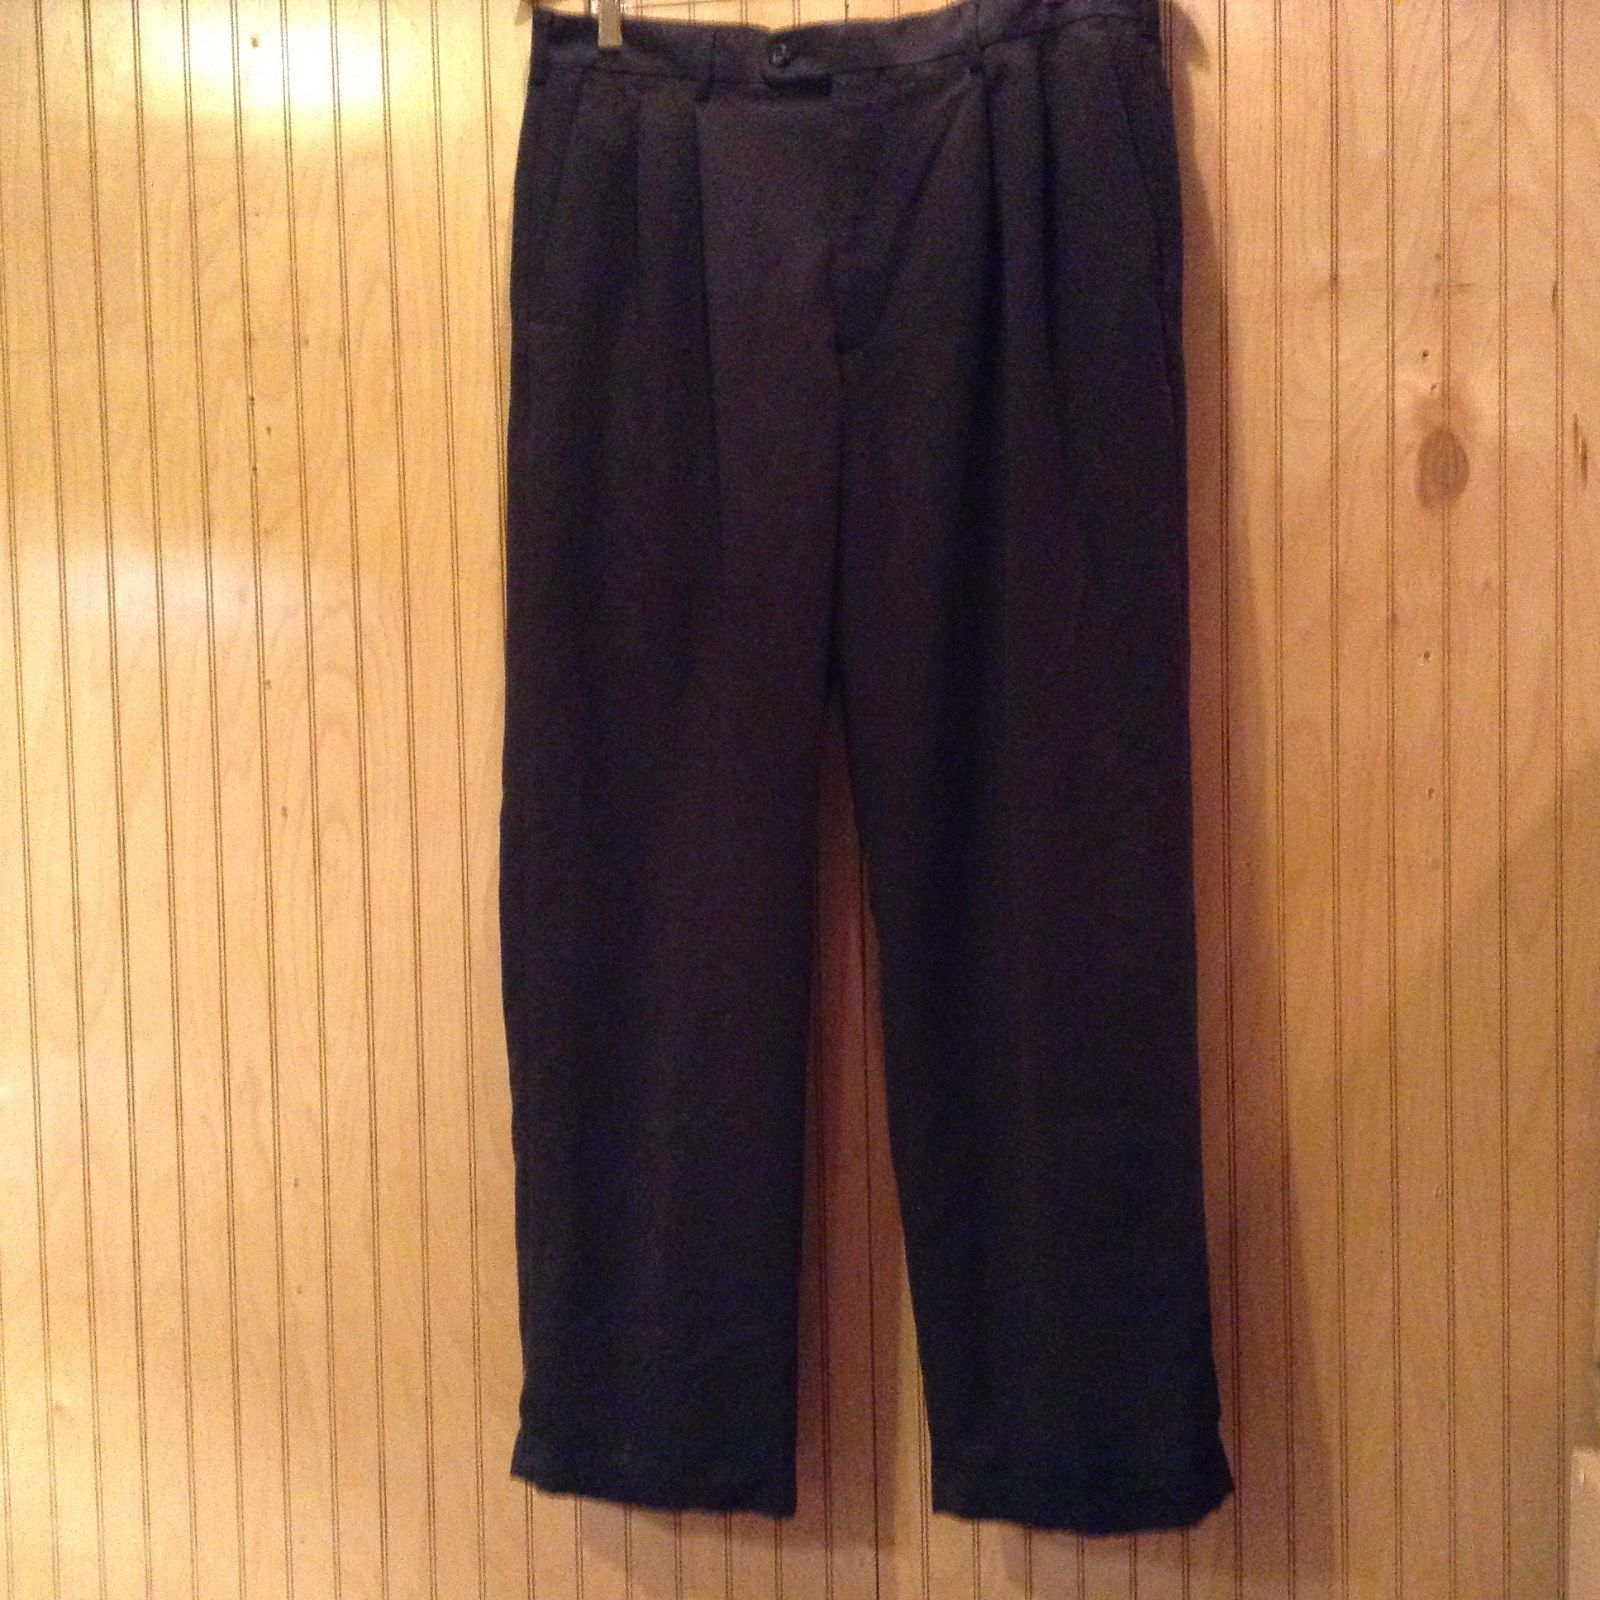 Perry Ellis Portfolio Black Pleated Front Dress Pants Size 36 by 32